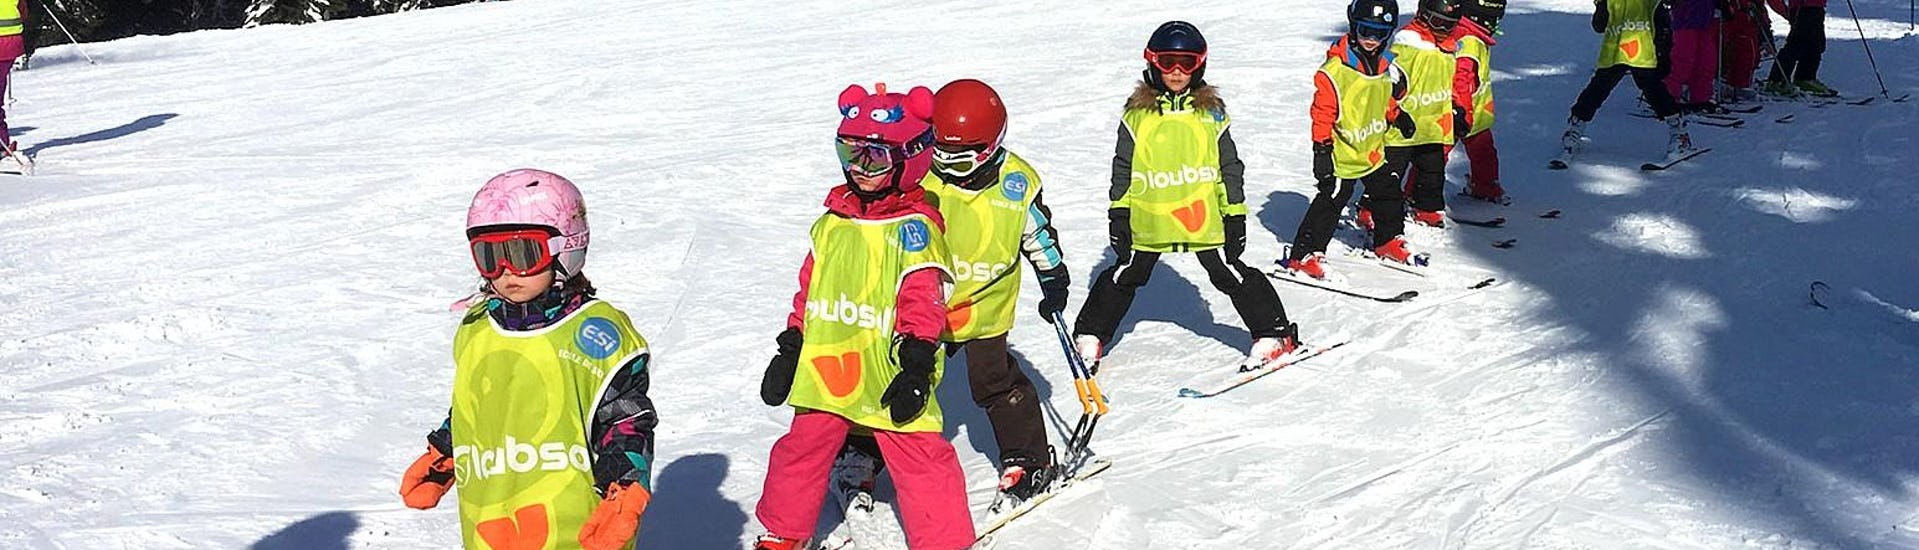 Ski Lessons for Kids (5-15 years) - Flaine - Afternoon